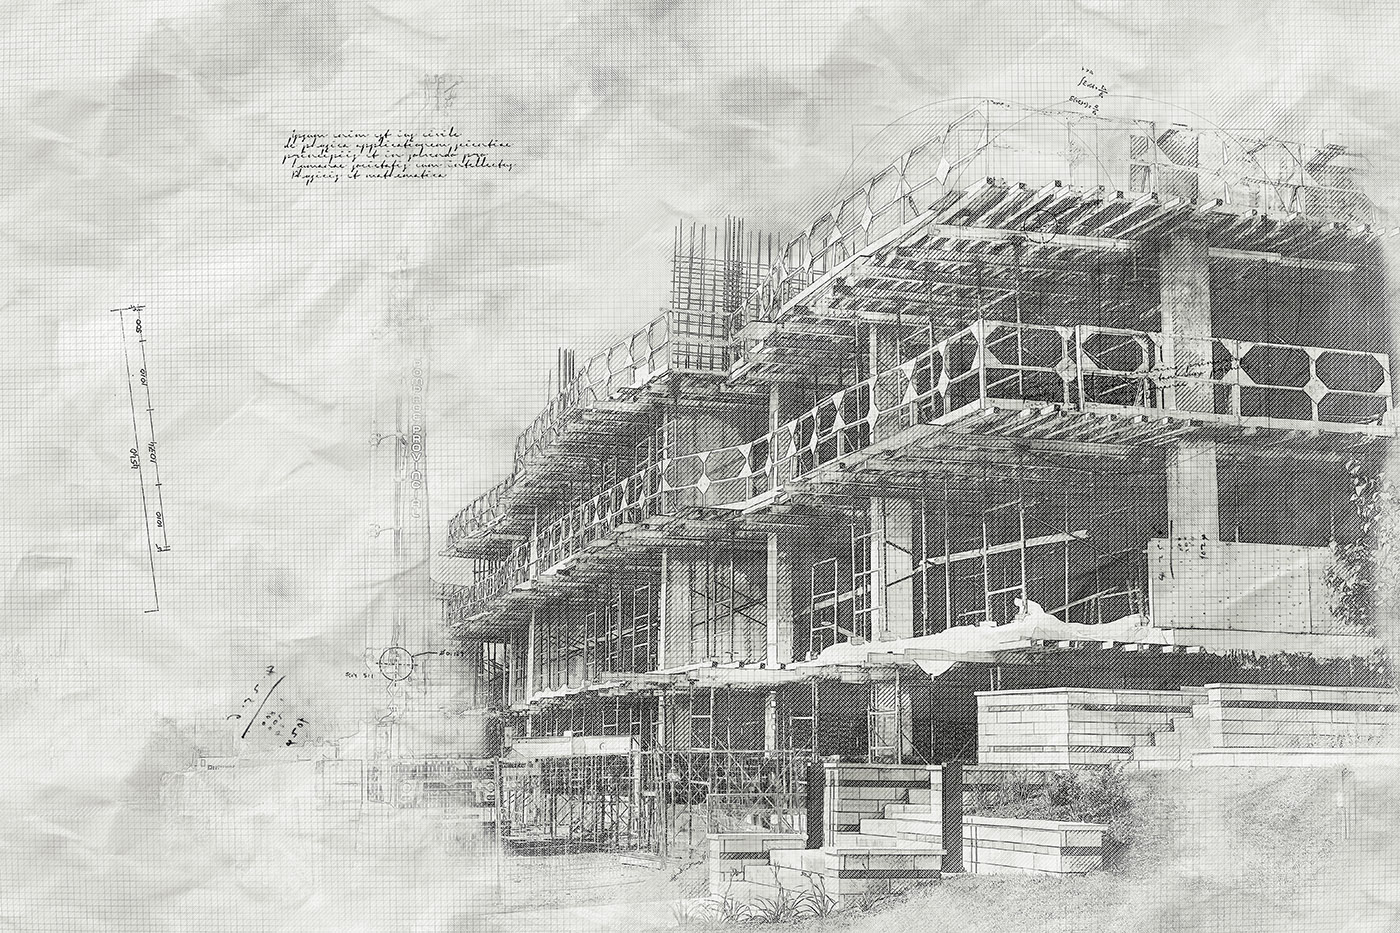 Construction Project Sketch B&W Image - Stock Photos, Pictures & Images